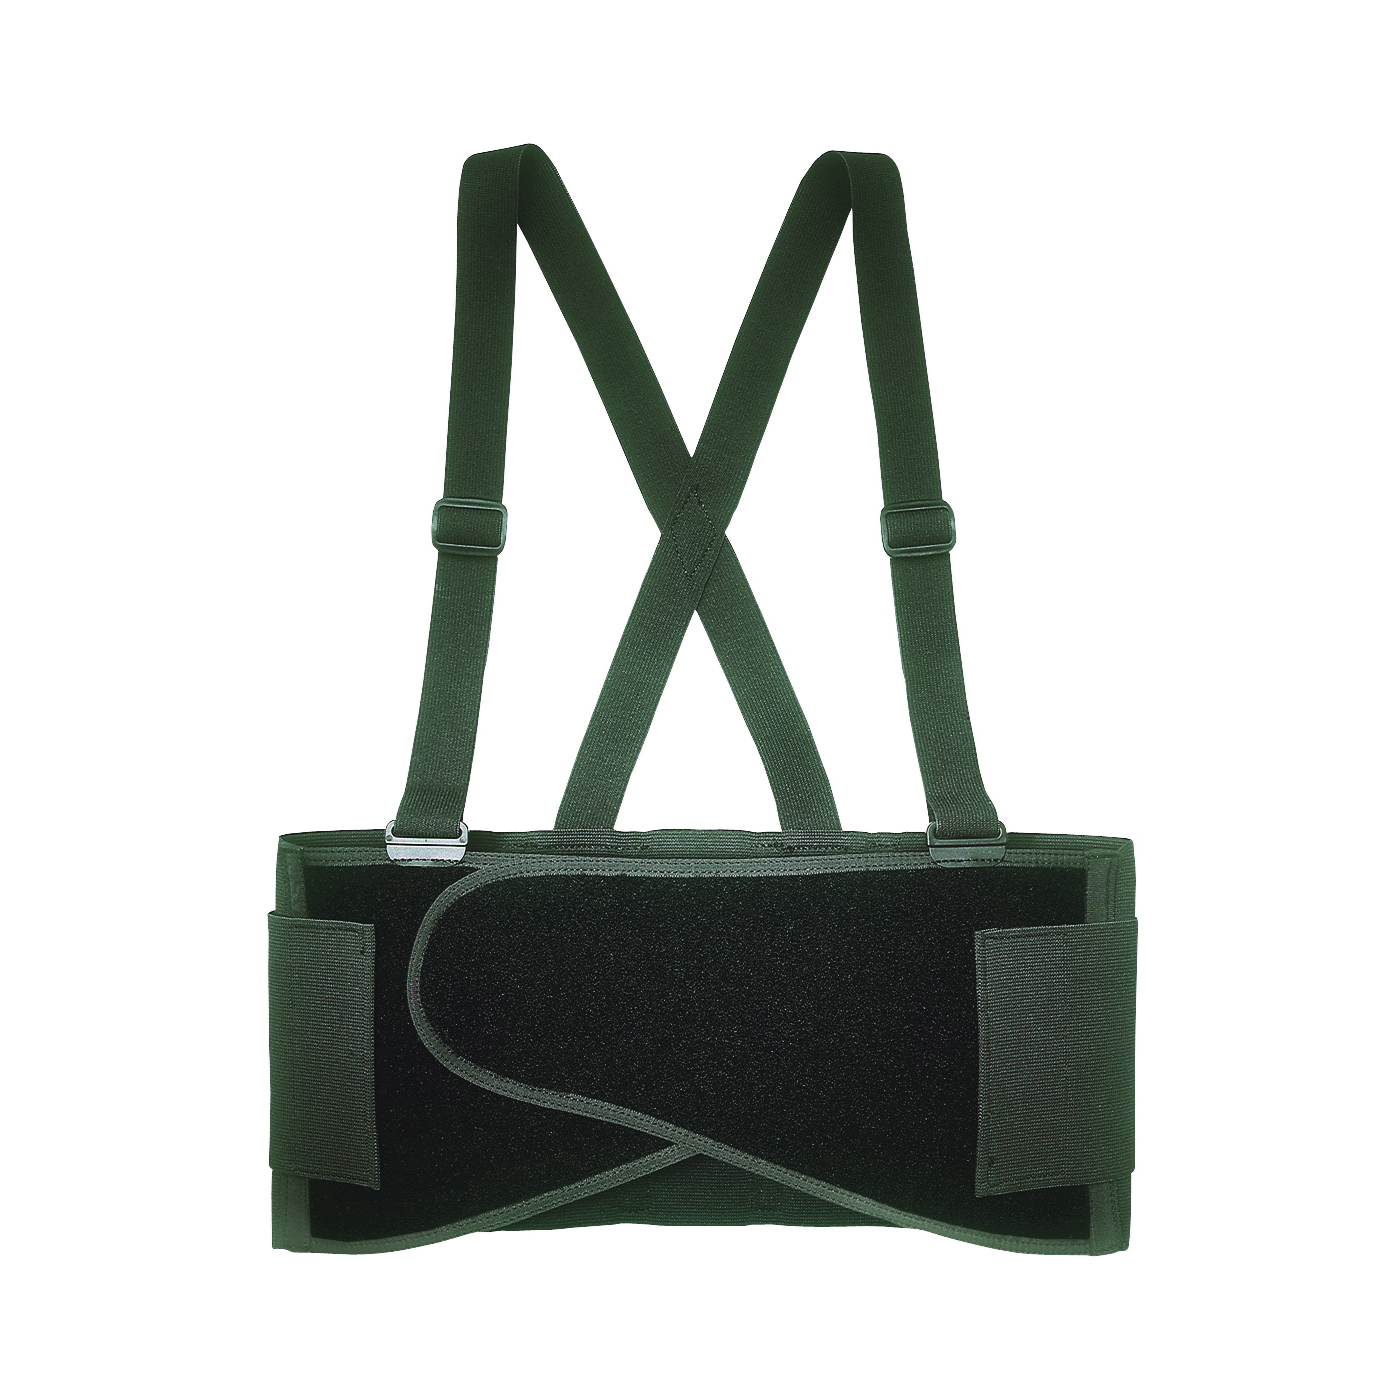 Picture of CLC 5000M Back Support Belt, M, Fits to Waist Size: 32 to 38 in